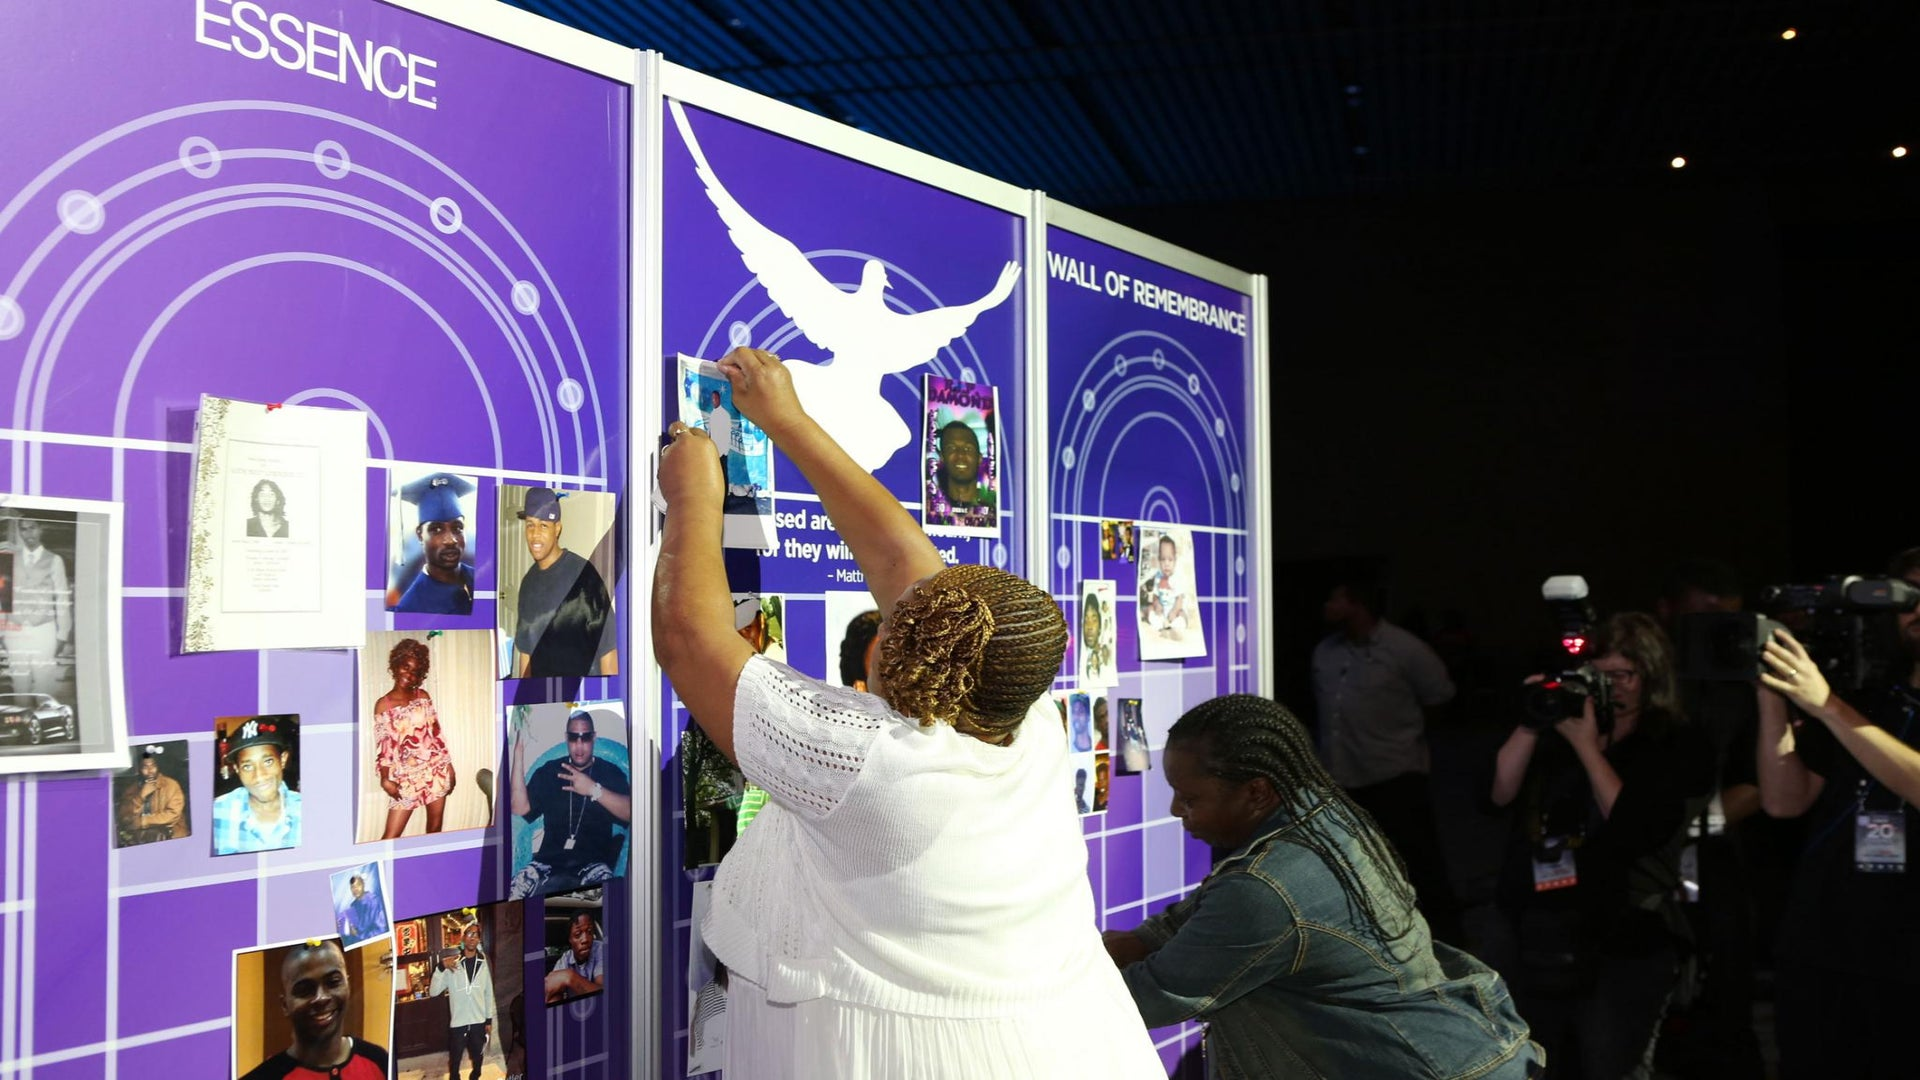 Essence Honors Mothers Who've Lost Children to Gun Violence